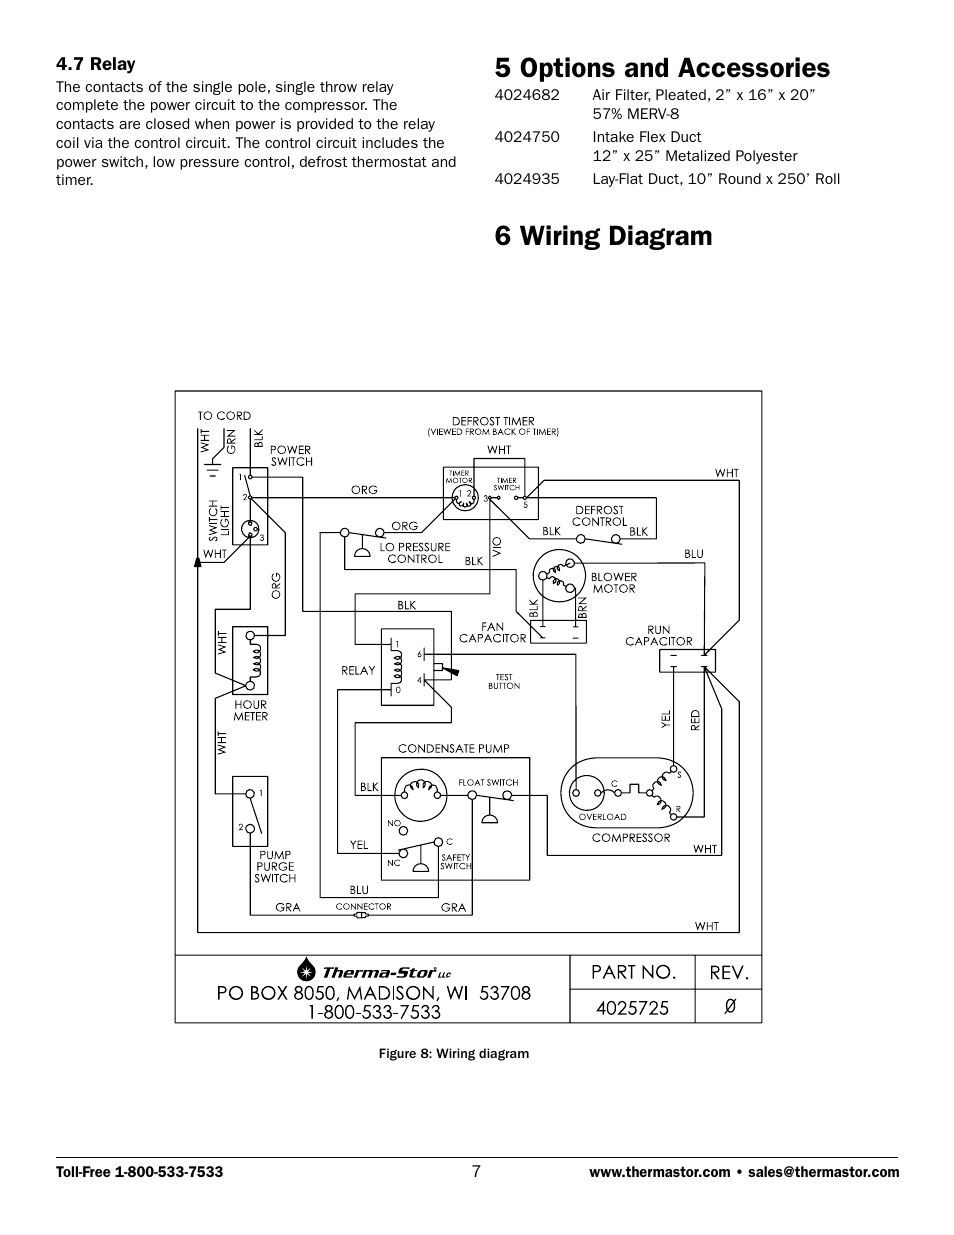 medium resolution of 5 options and accessories 6 wiring diagram therma stor products phoenix connector wiring diagram phoenix wiring diagram